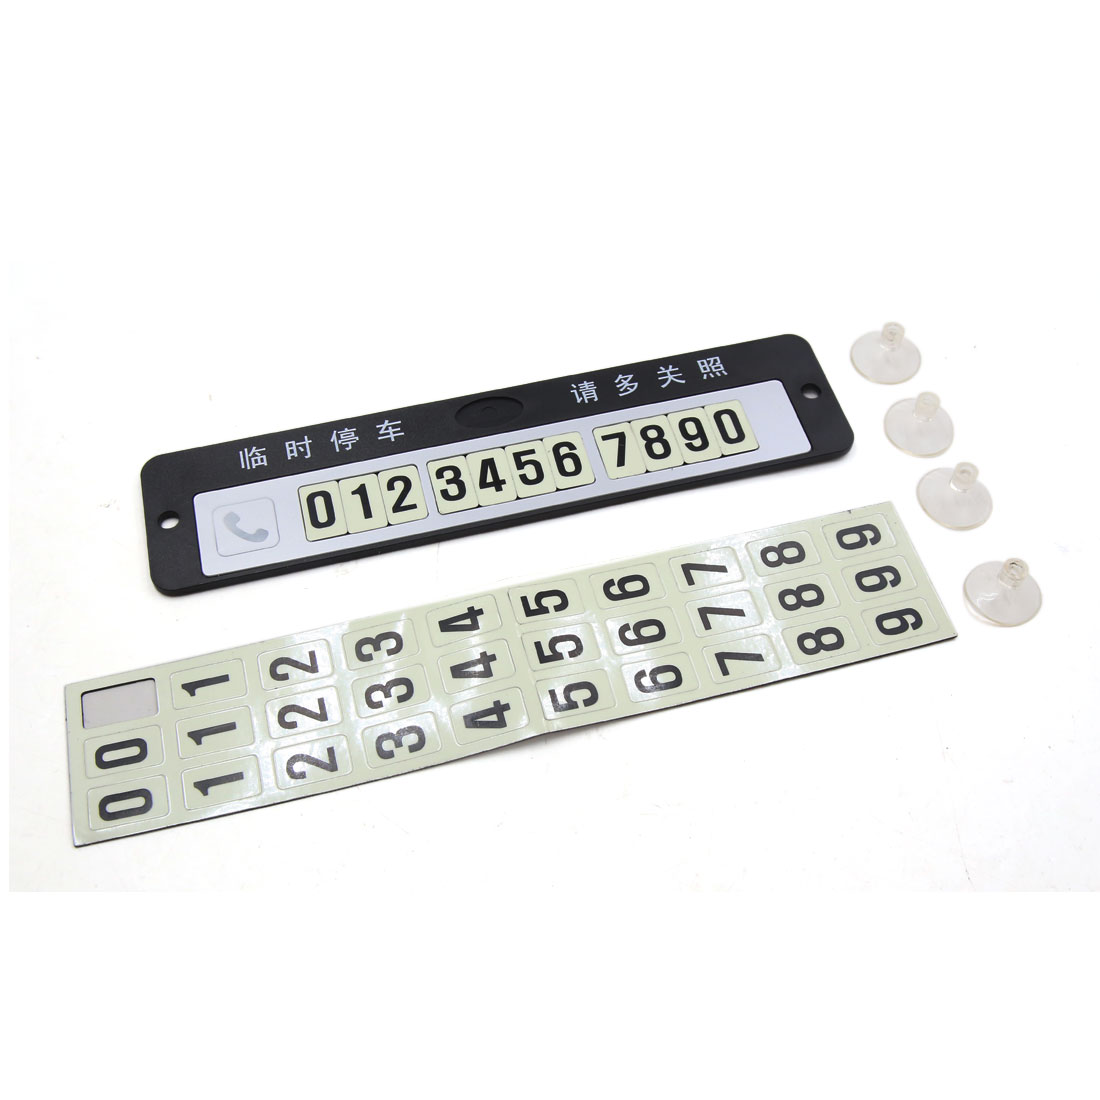 White Car Auto Luminous Parking Notification Phone Number Card 20 x 4.8 x 0.3cm